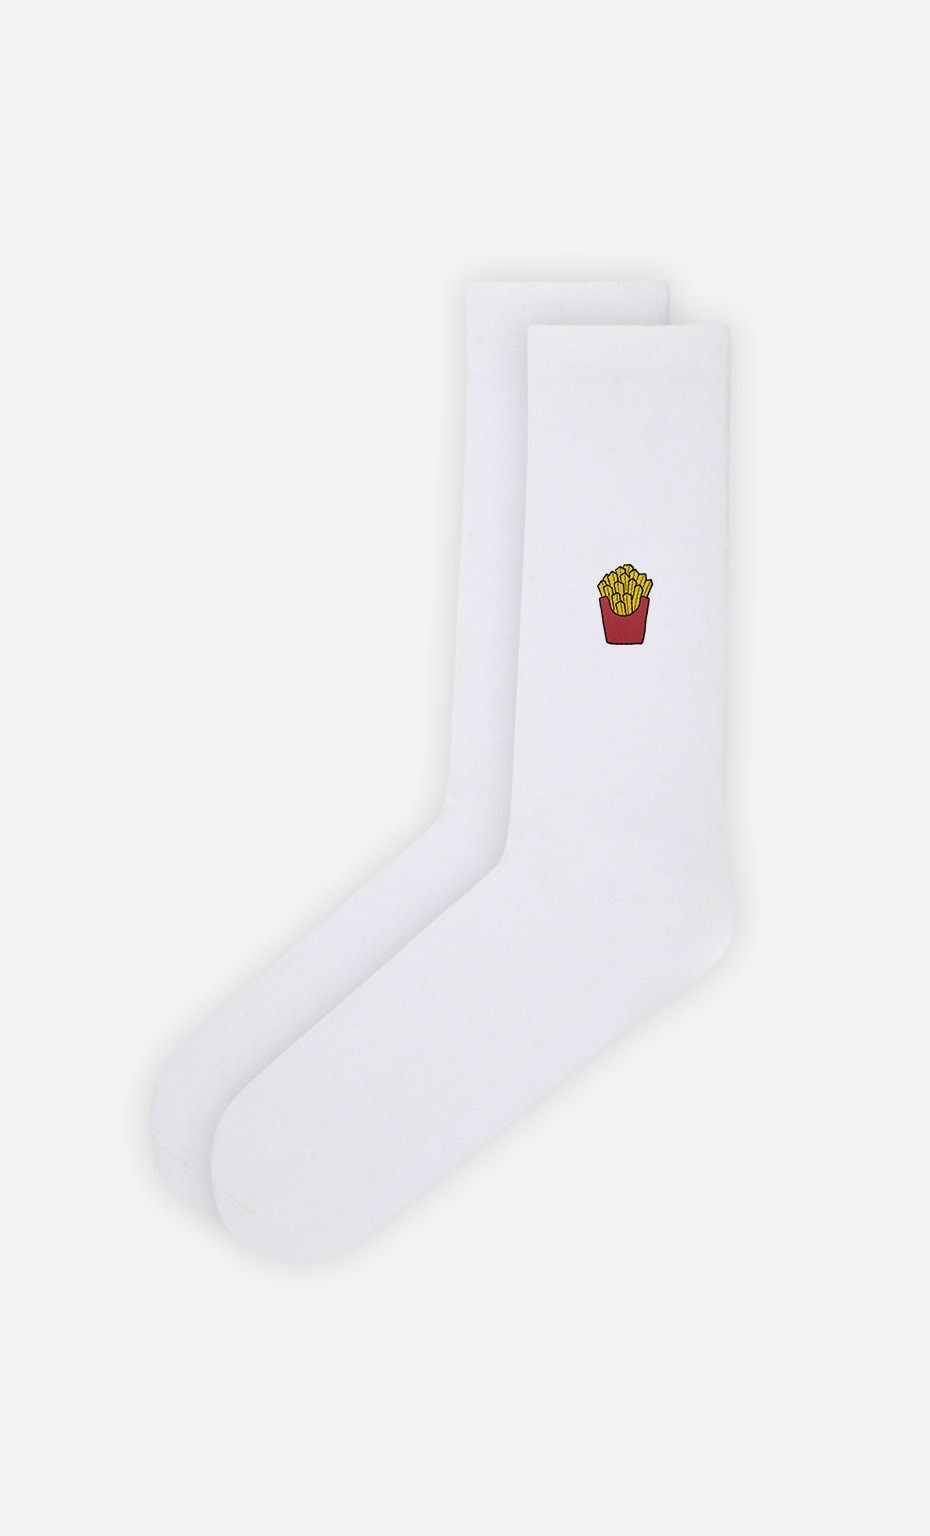 Chaussettes Blanches French Fries